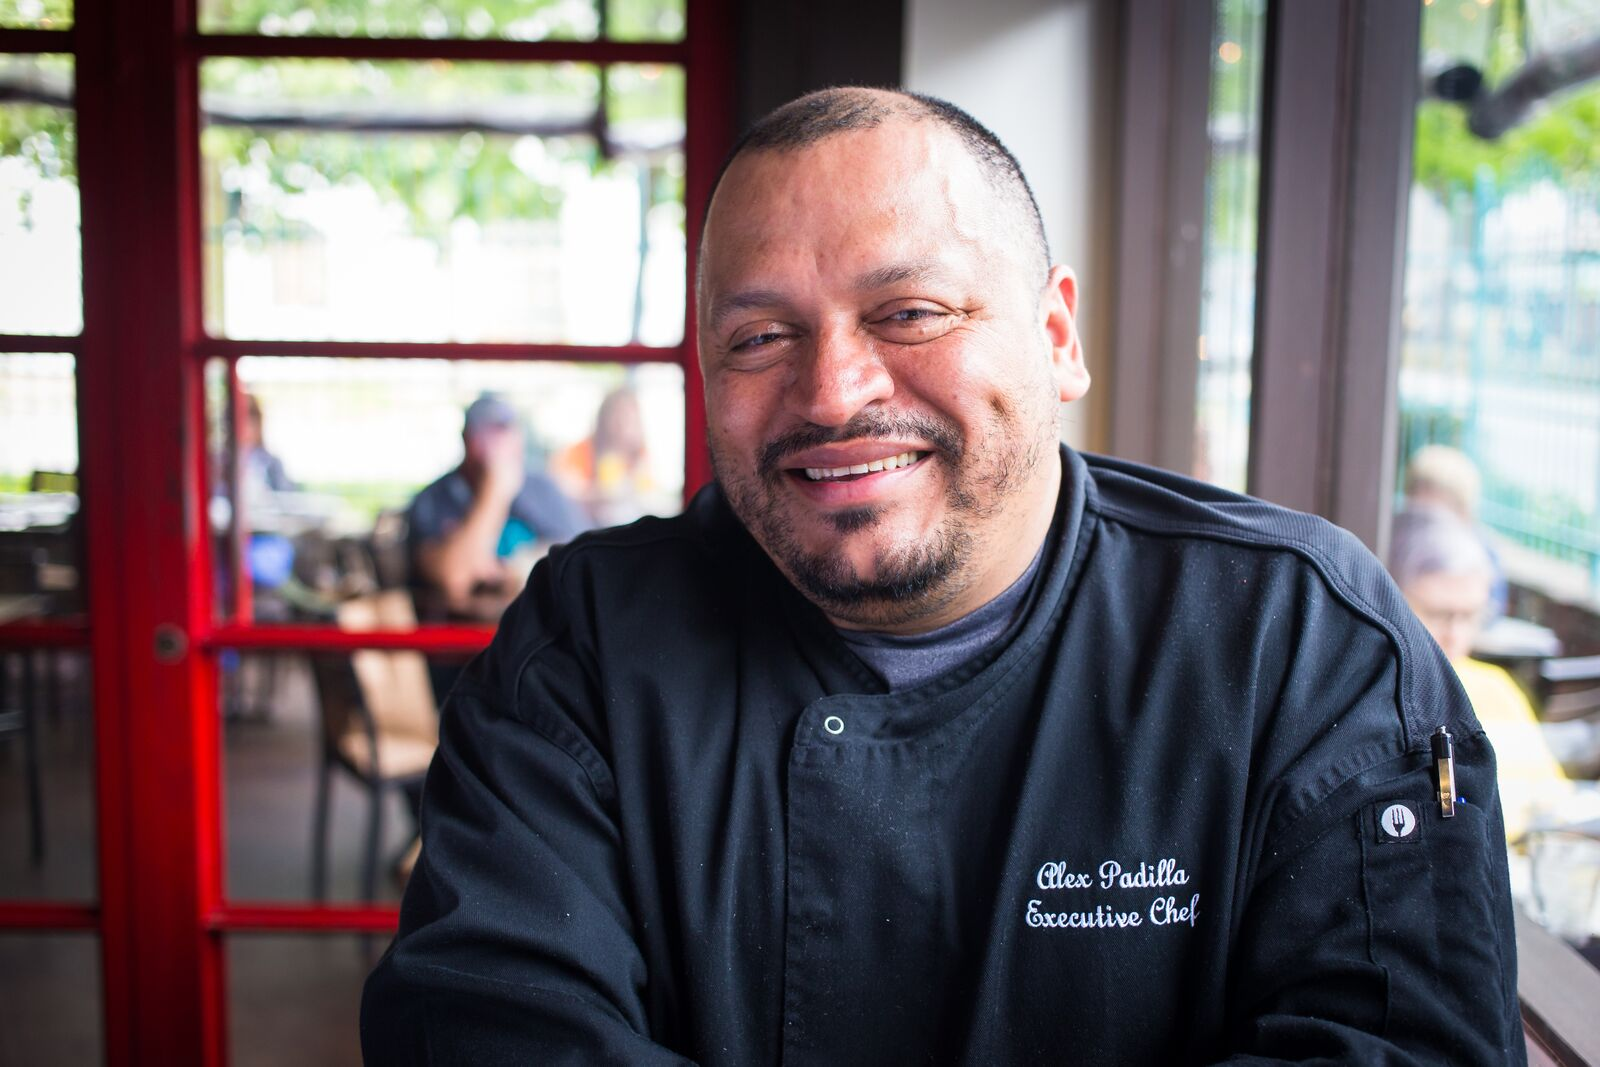 Executive chef Alex Padilla of The Original Ninfa's On Navigation